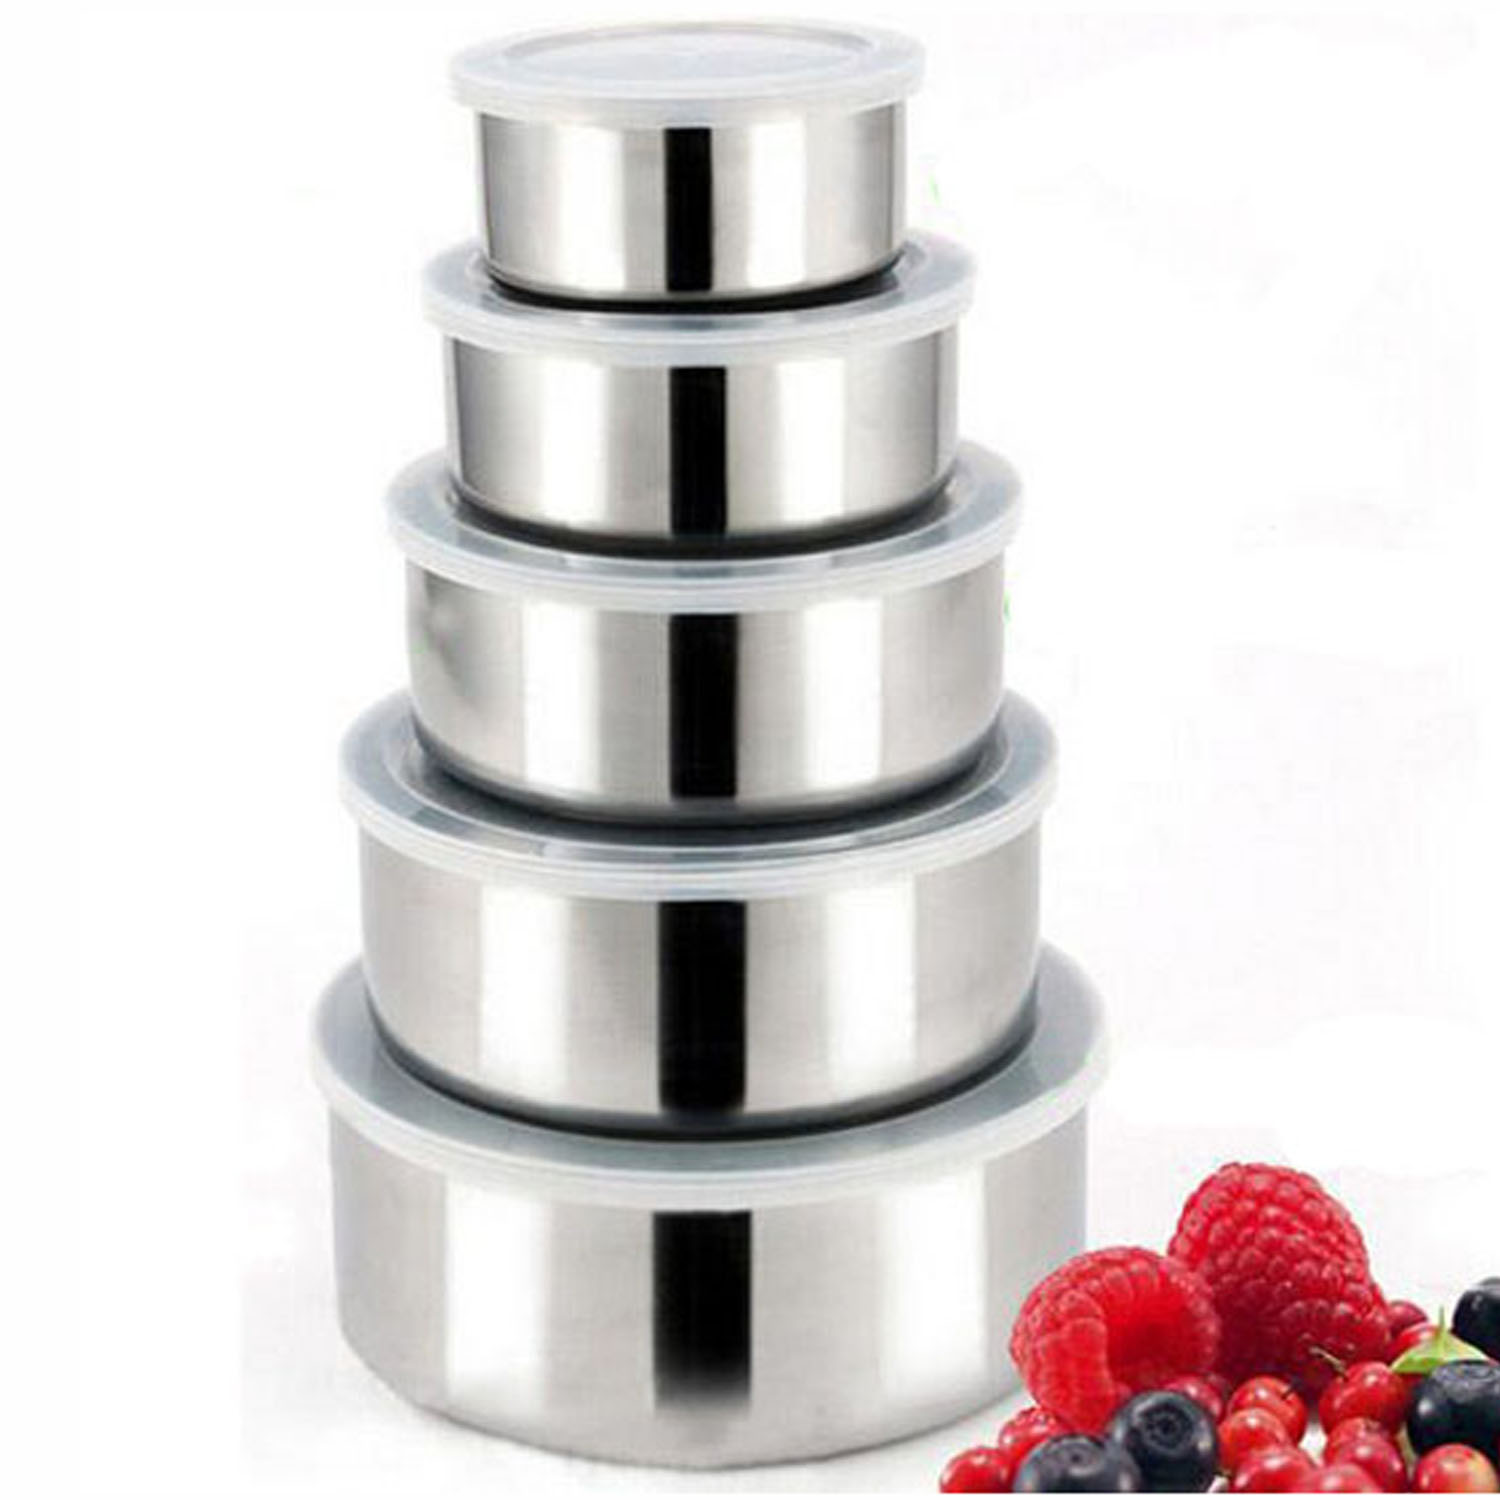 5 pcs Stainless Steel Food Storage Containers Box Mixing Bowls w Airtight lids Preserving Box